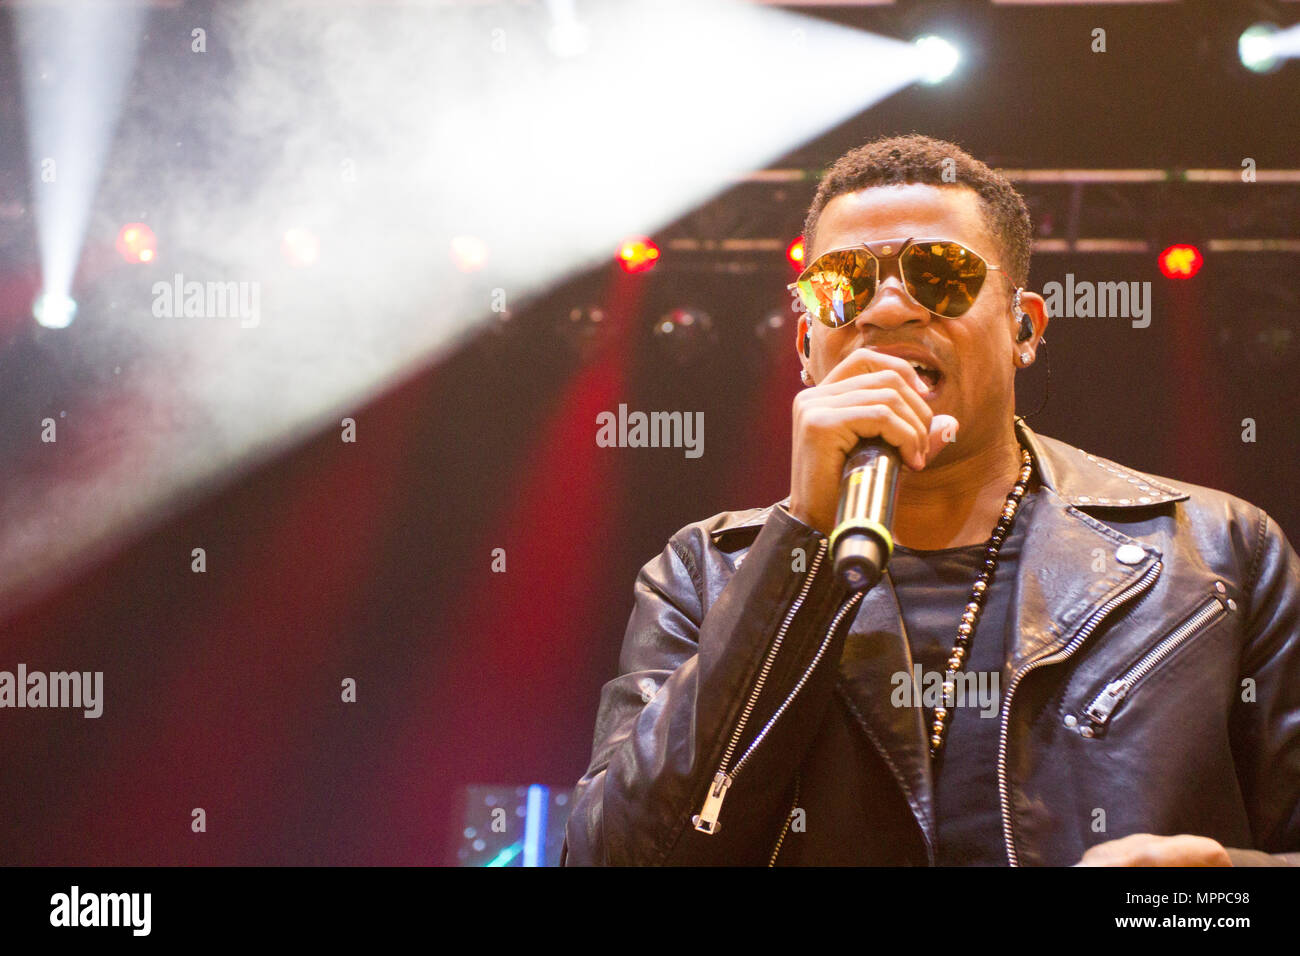 London, United Kingdom. 24 May, 2018. Gente de Zona perform in London, United Kingdom. Credit: Brayan Lopez/Alamy Live News. Stock Photo